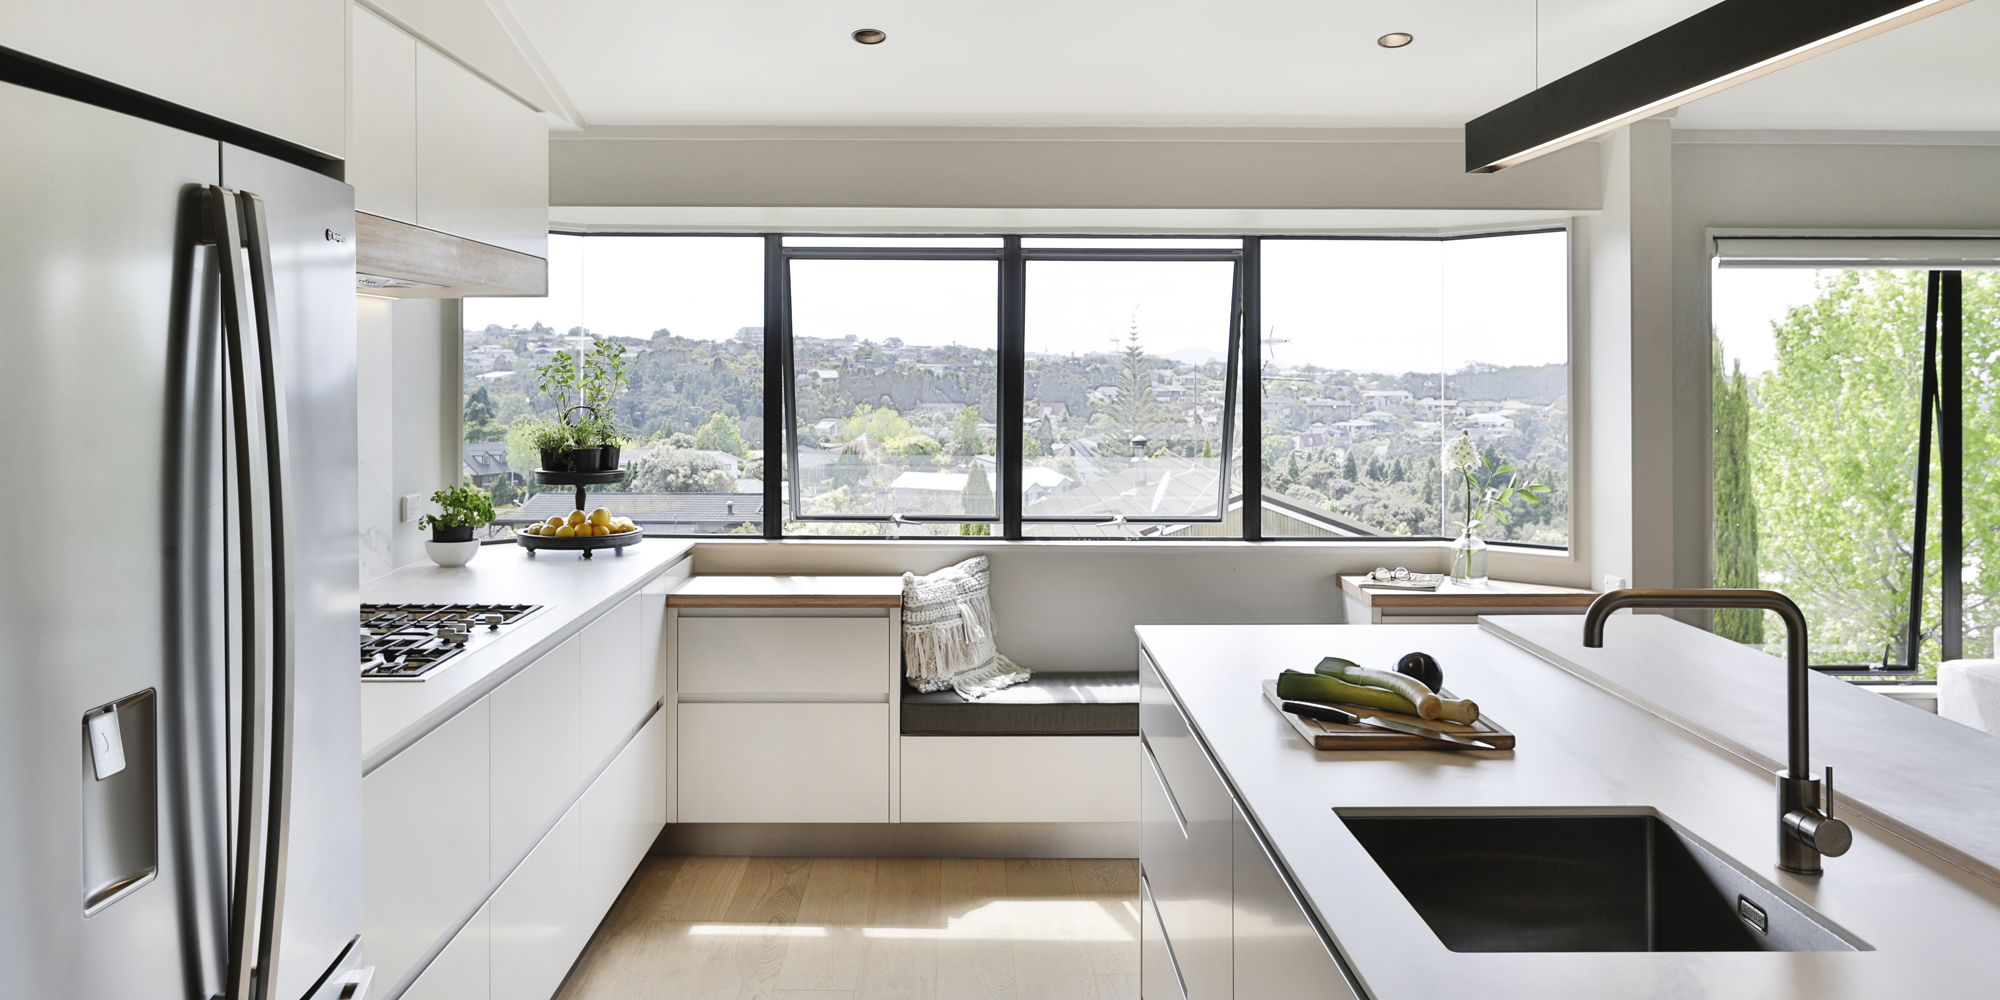 KBD-Chatswood-Kitchen-3.jpg